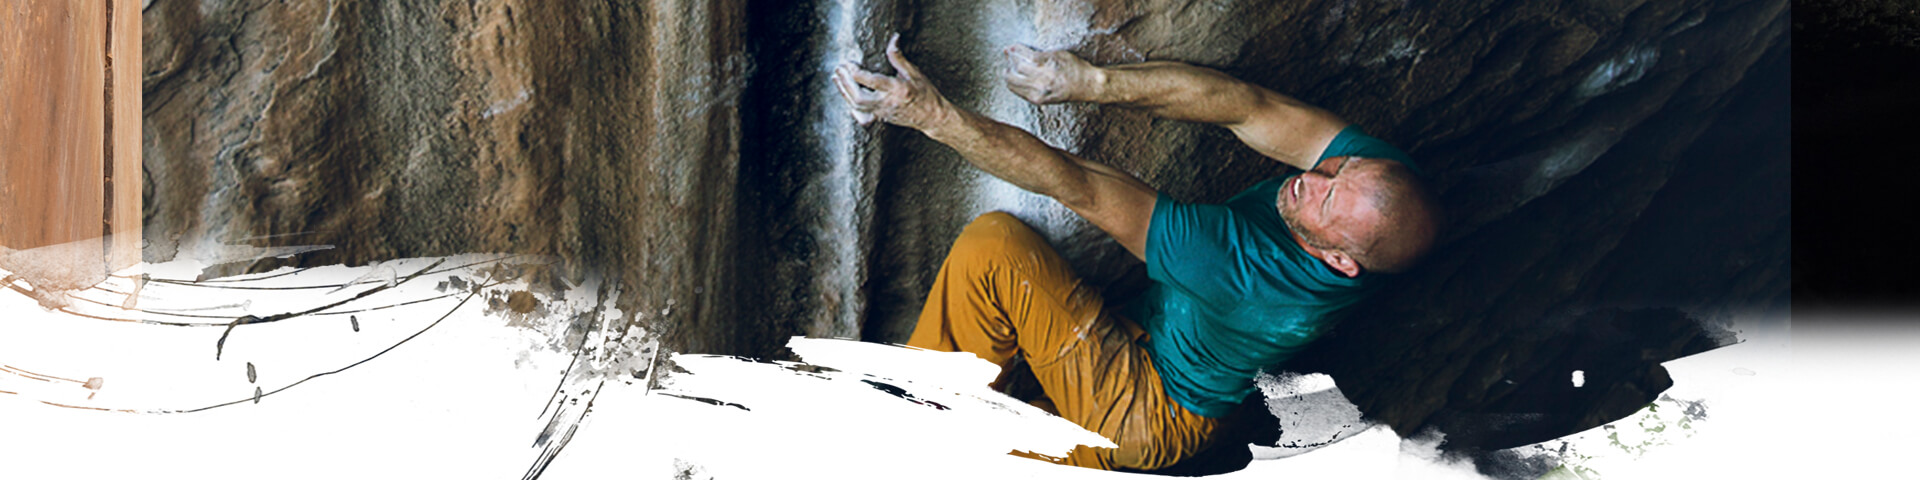 Bouldering without rope